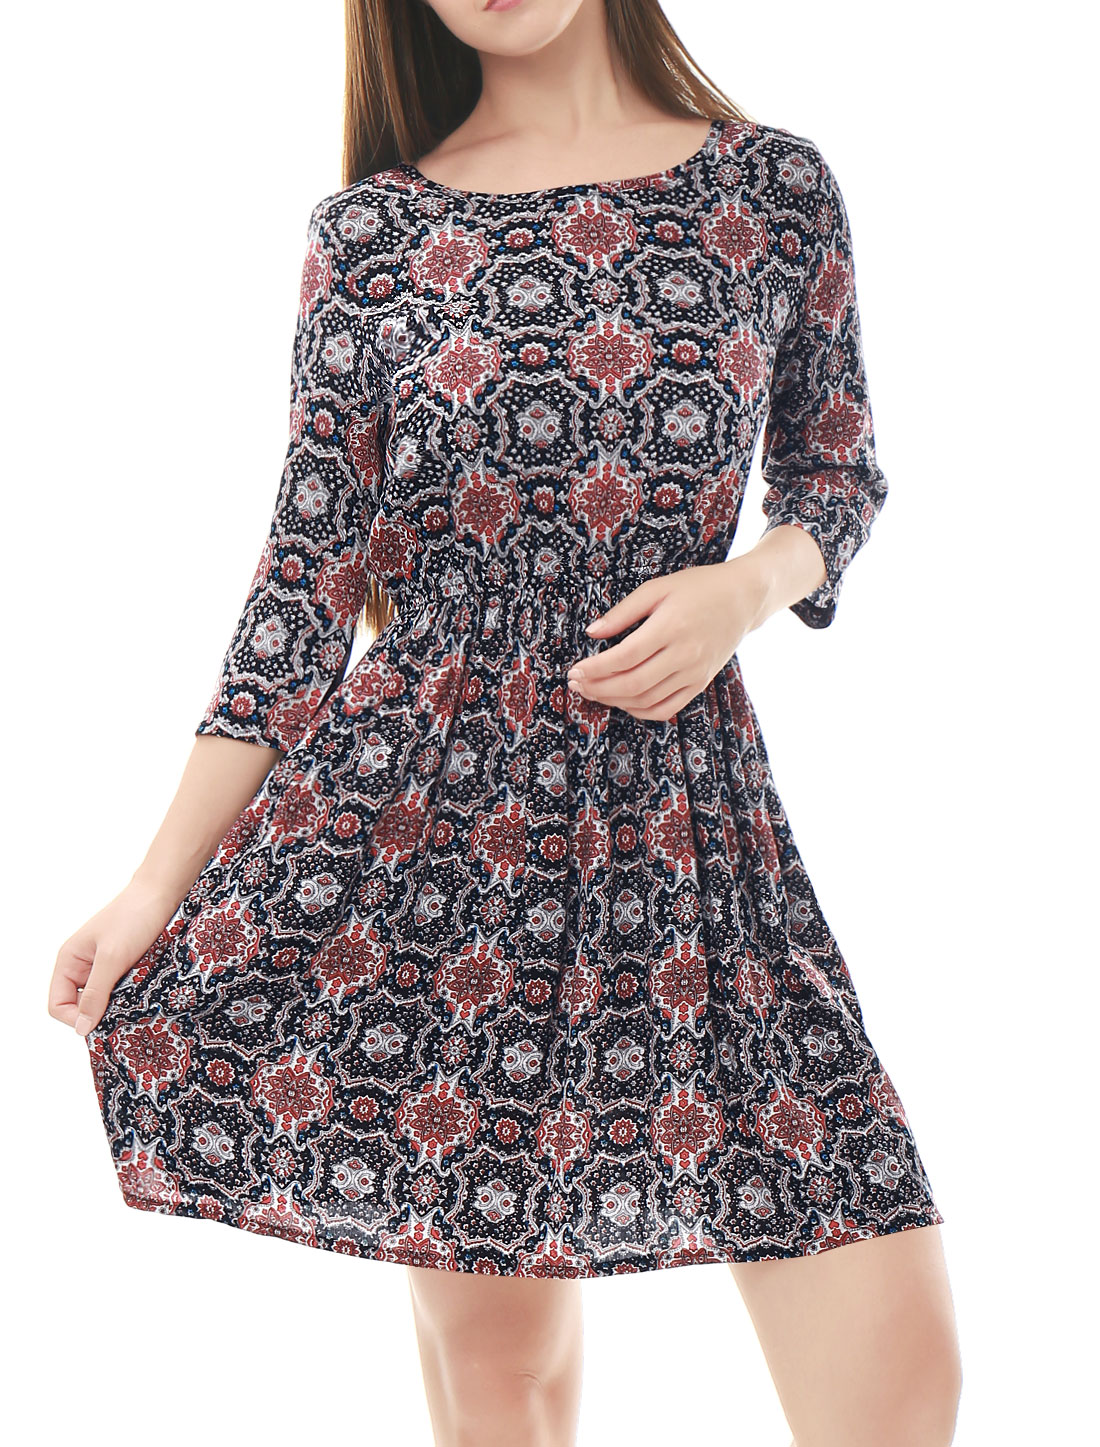 Woman Floral Prints 3/4 Sleeves Elastic Waist A Line Dress Black XL